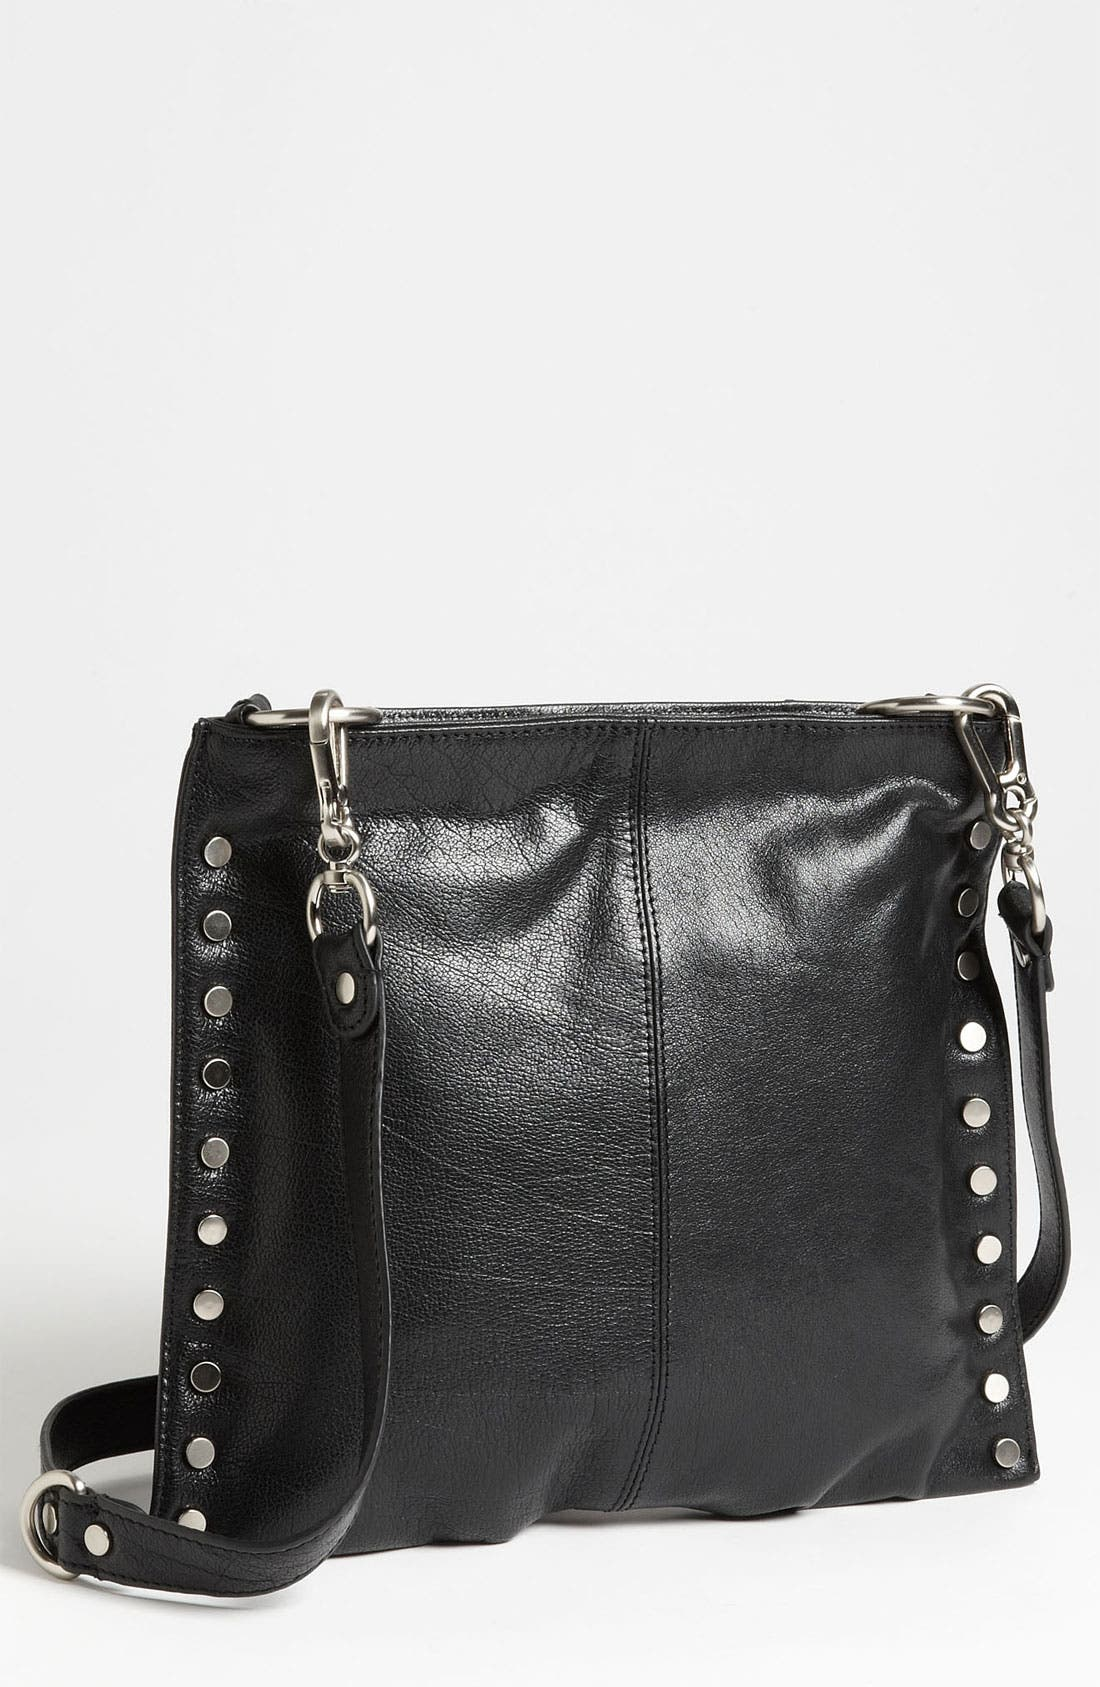 Sloane & Alex 'Angie' Leather Crossbody Bag,                             Main thumbnail 1, color,                             001